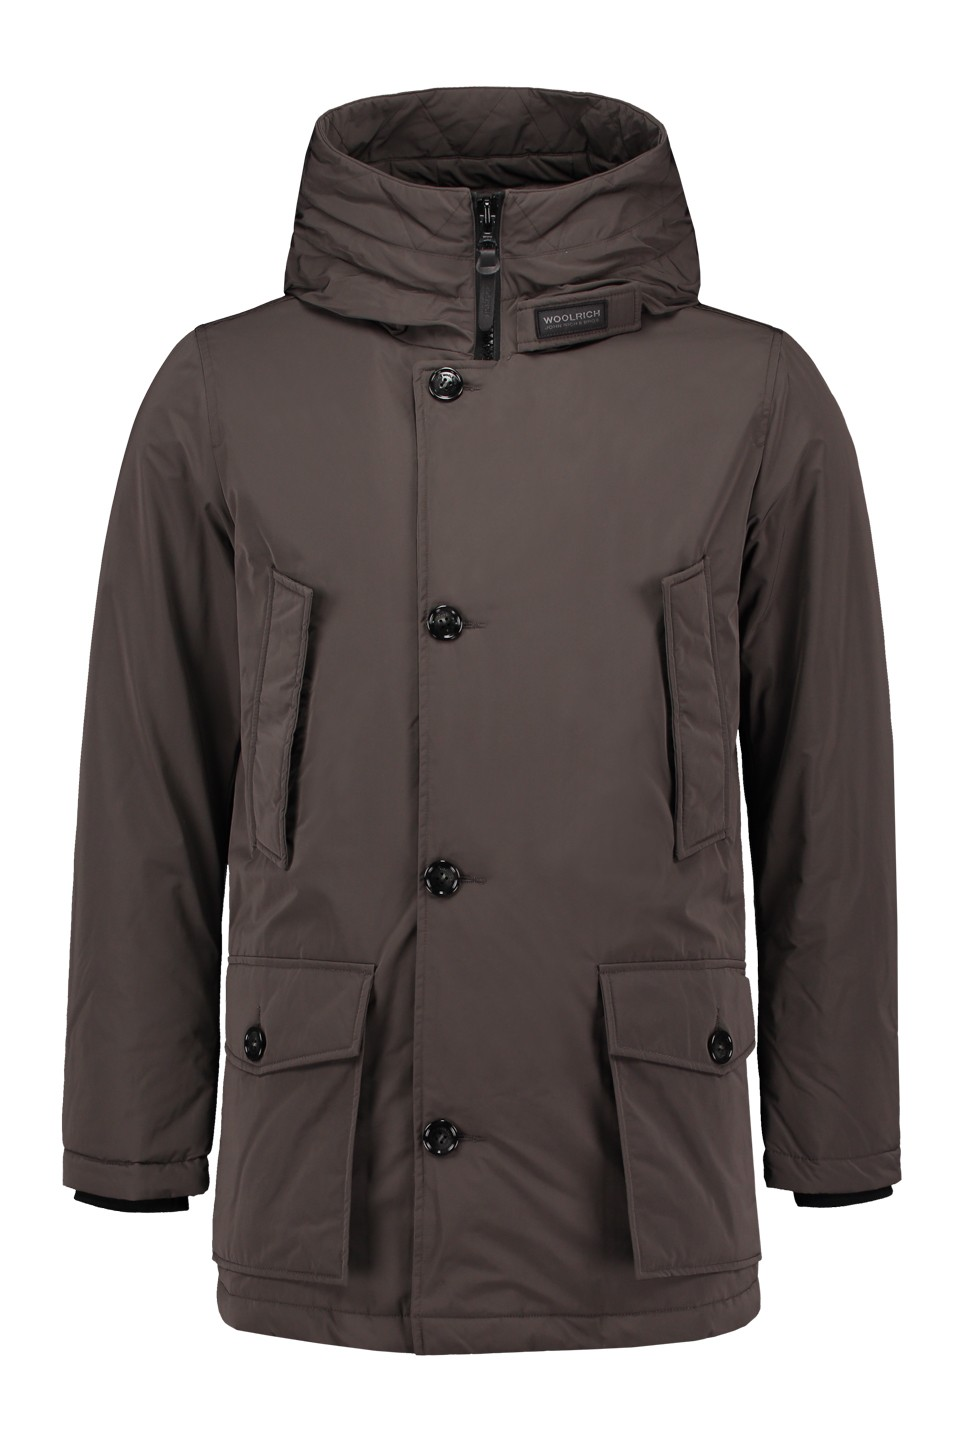 Woolrich City Parka in Faded Black - WOCPS2468 CF40 1016